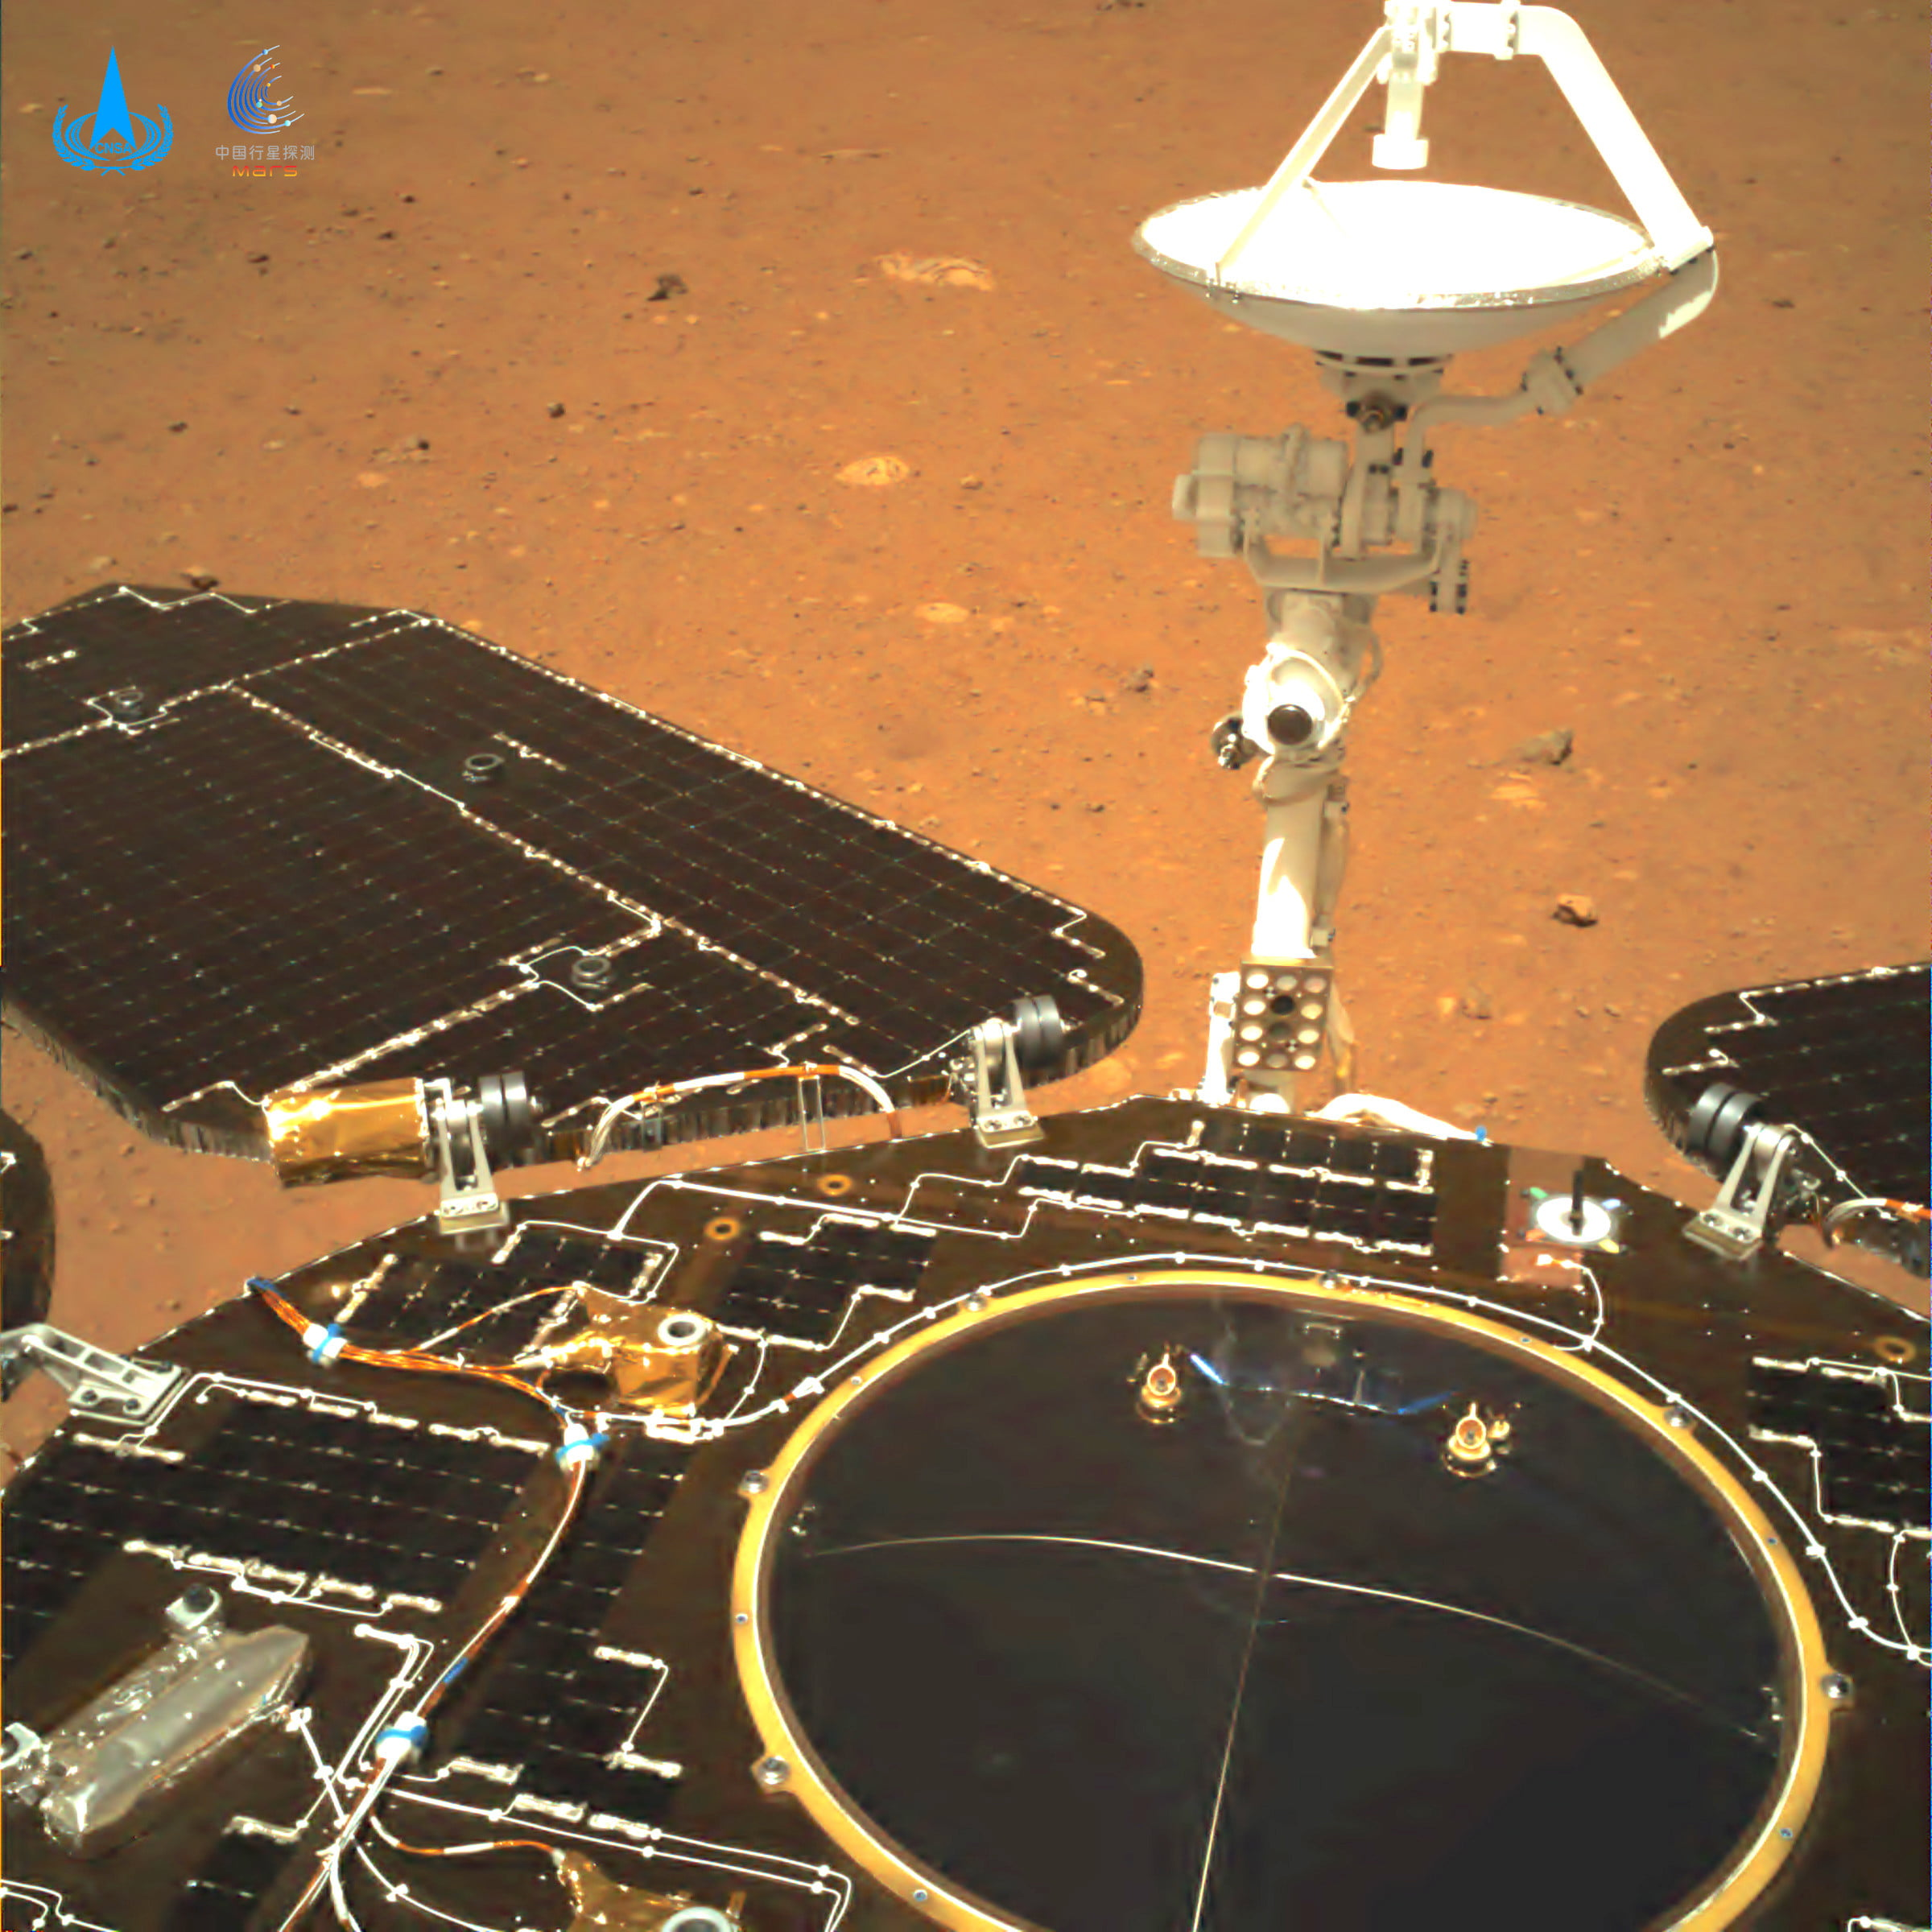 China's Zhurong Rover returns to its first images of Mars